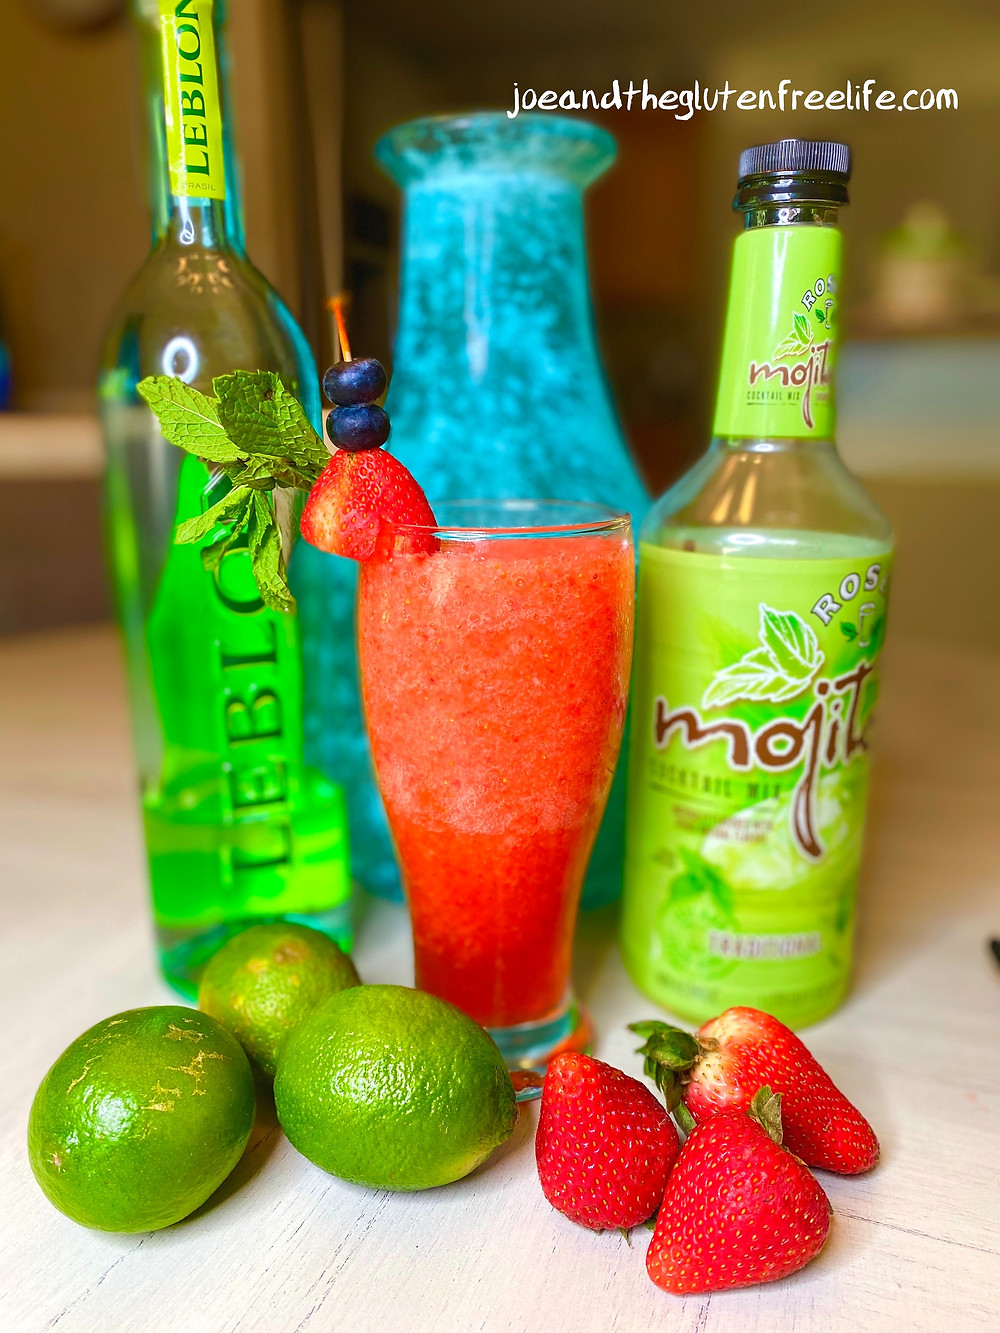 Refreshing and easy to make 5-minute strawberry mojito made with Cachaça!